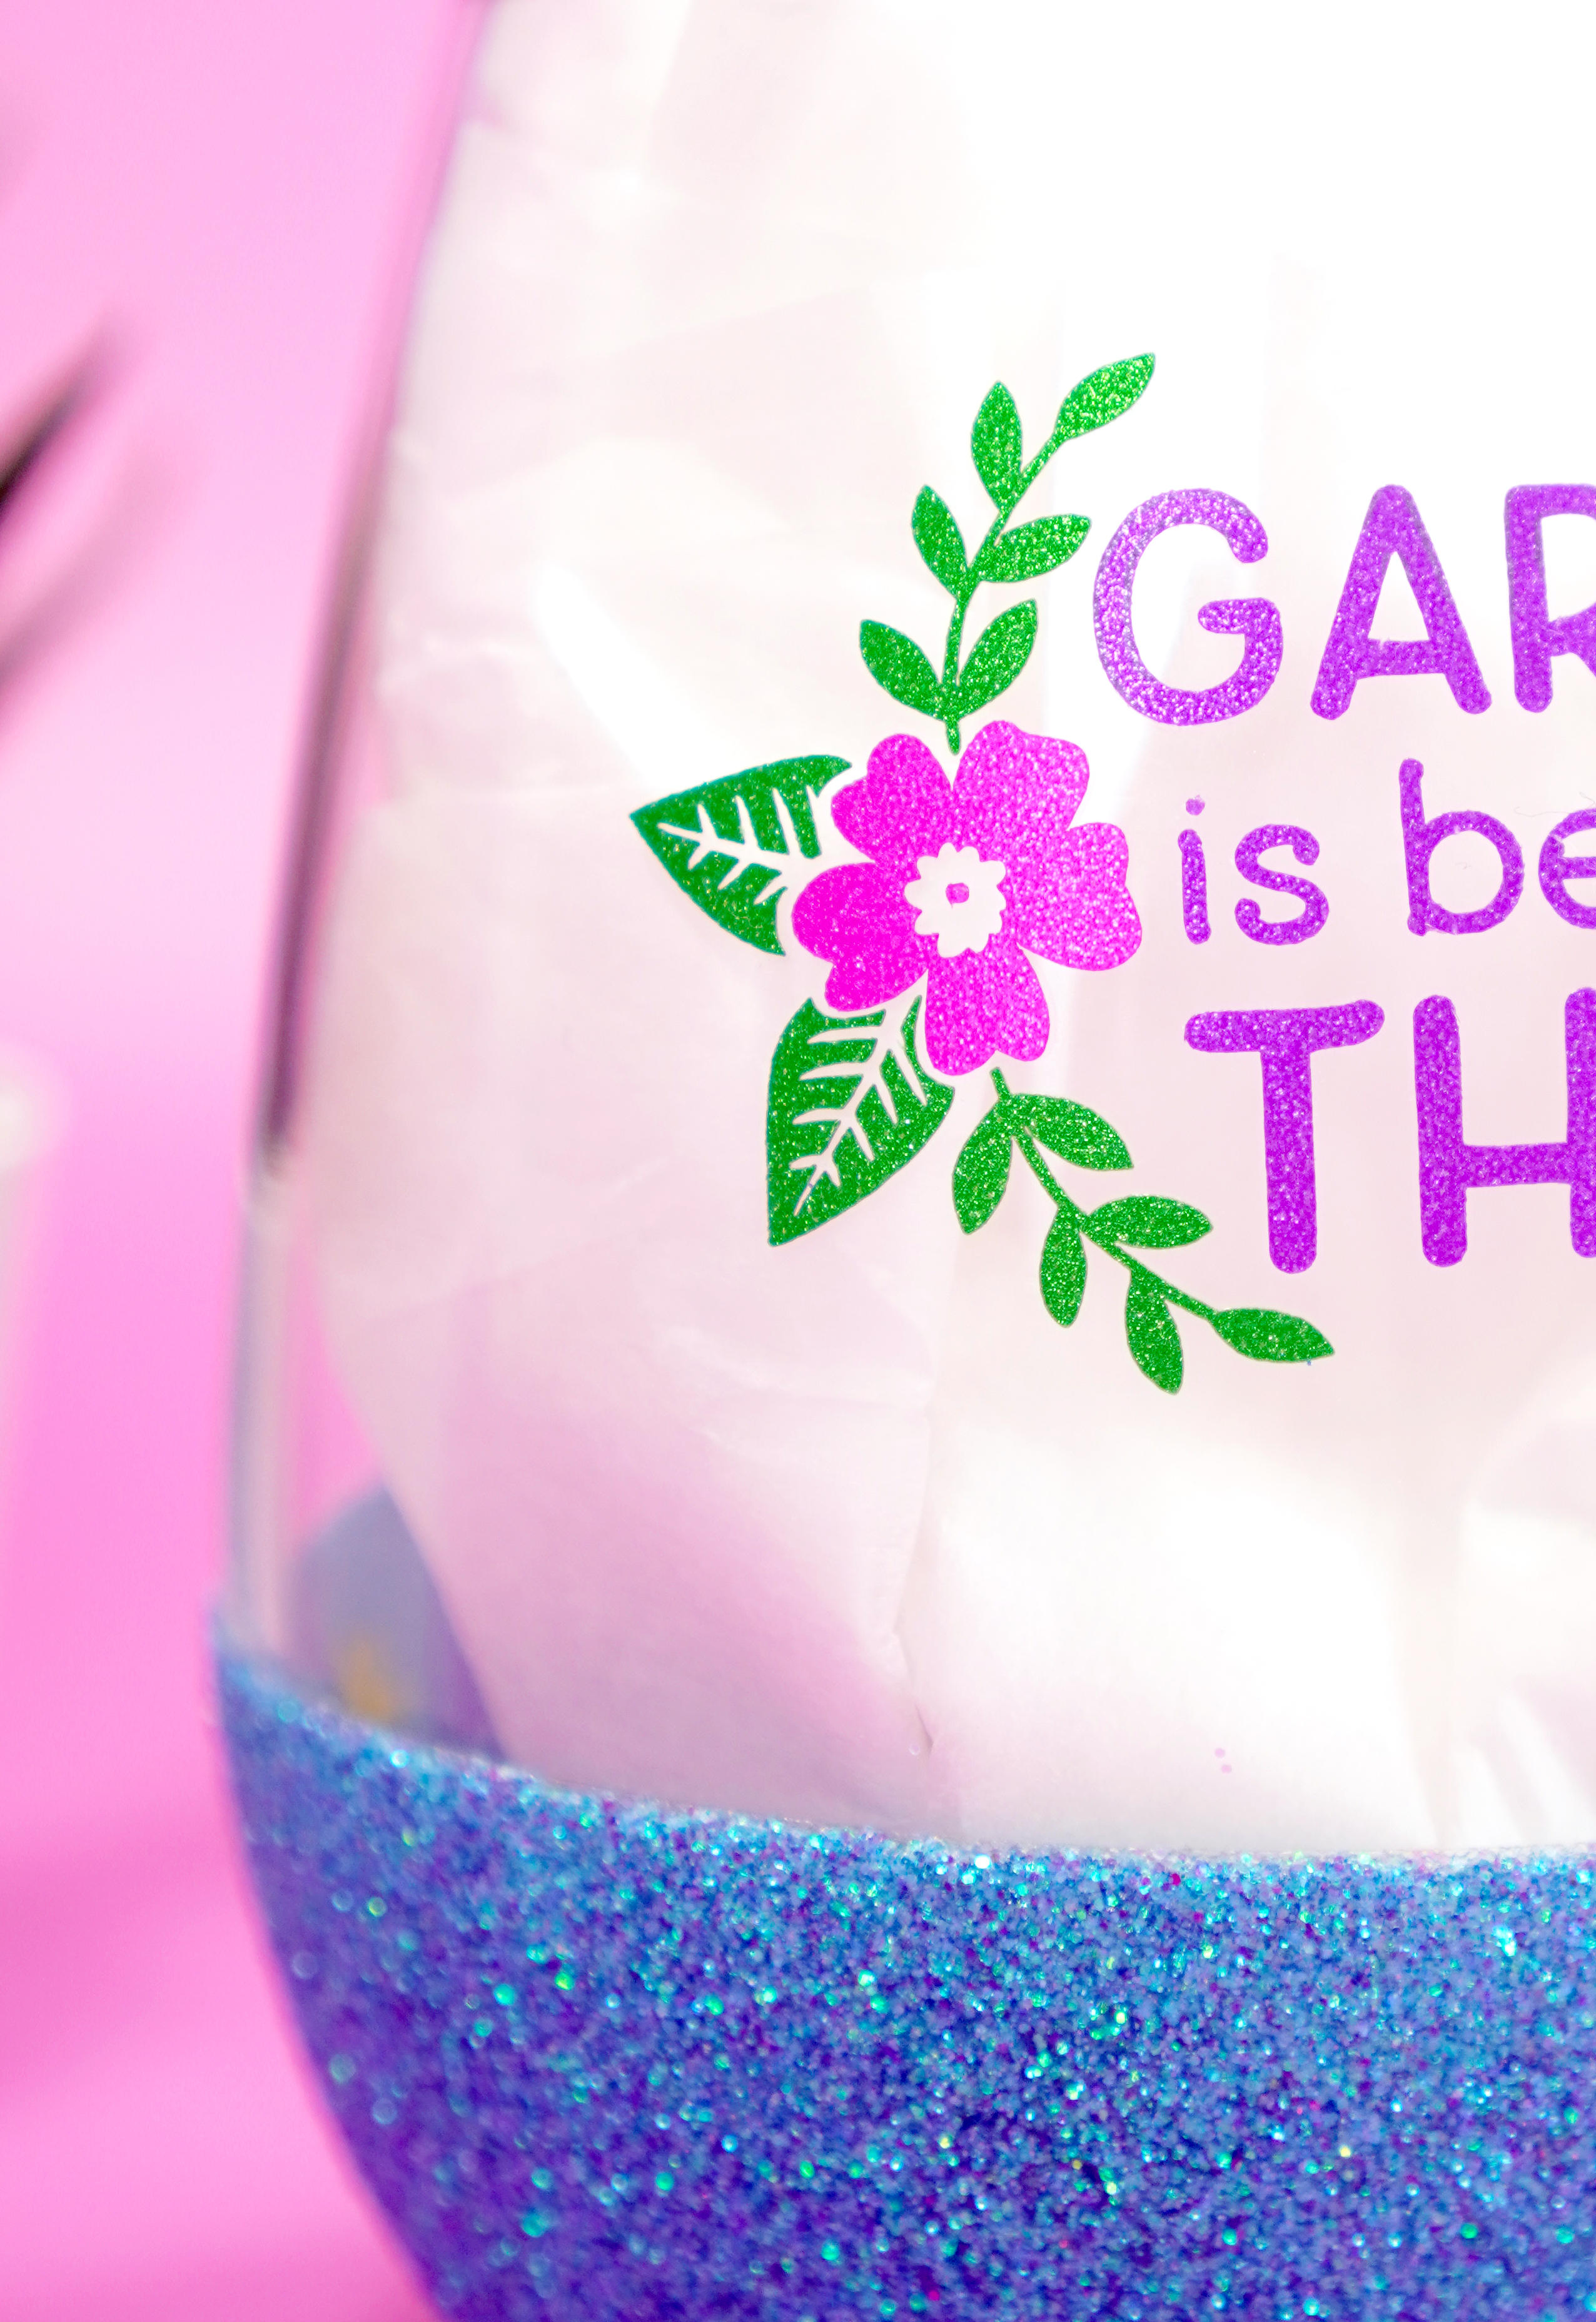 Close up of Cricut Shimmer Vinyl design on wine glass - pink flower with green leaves and vines